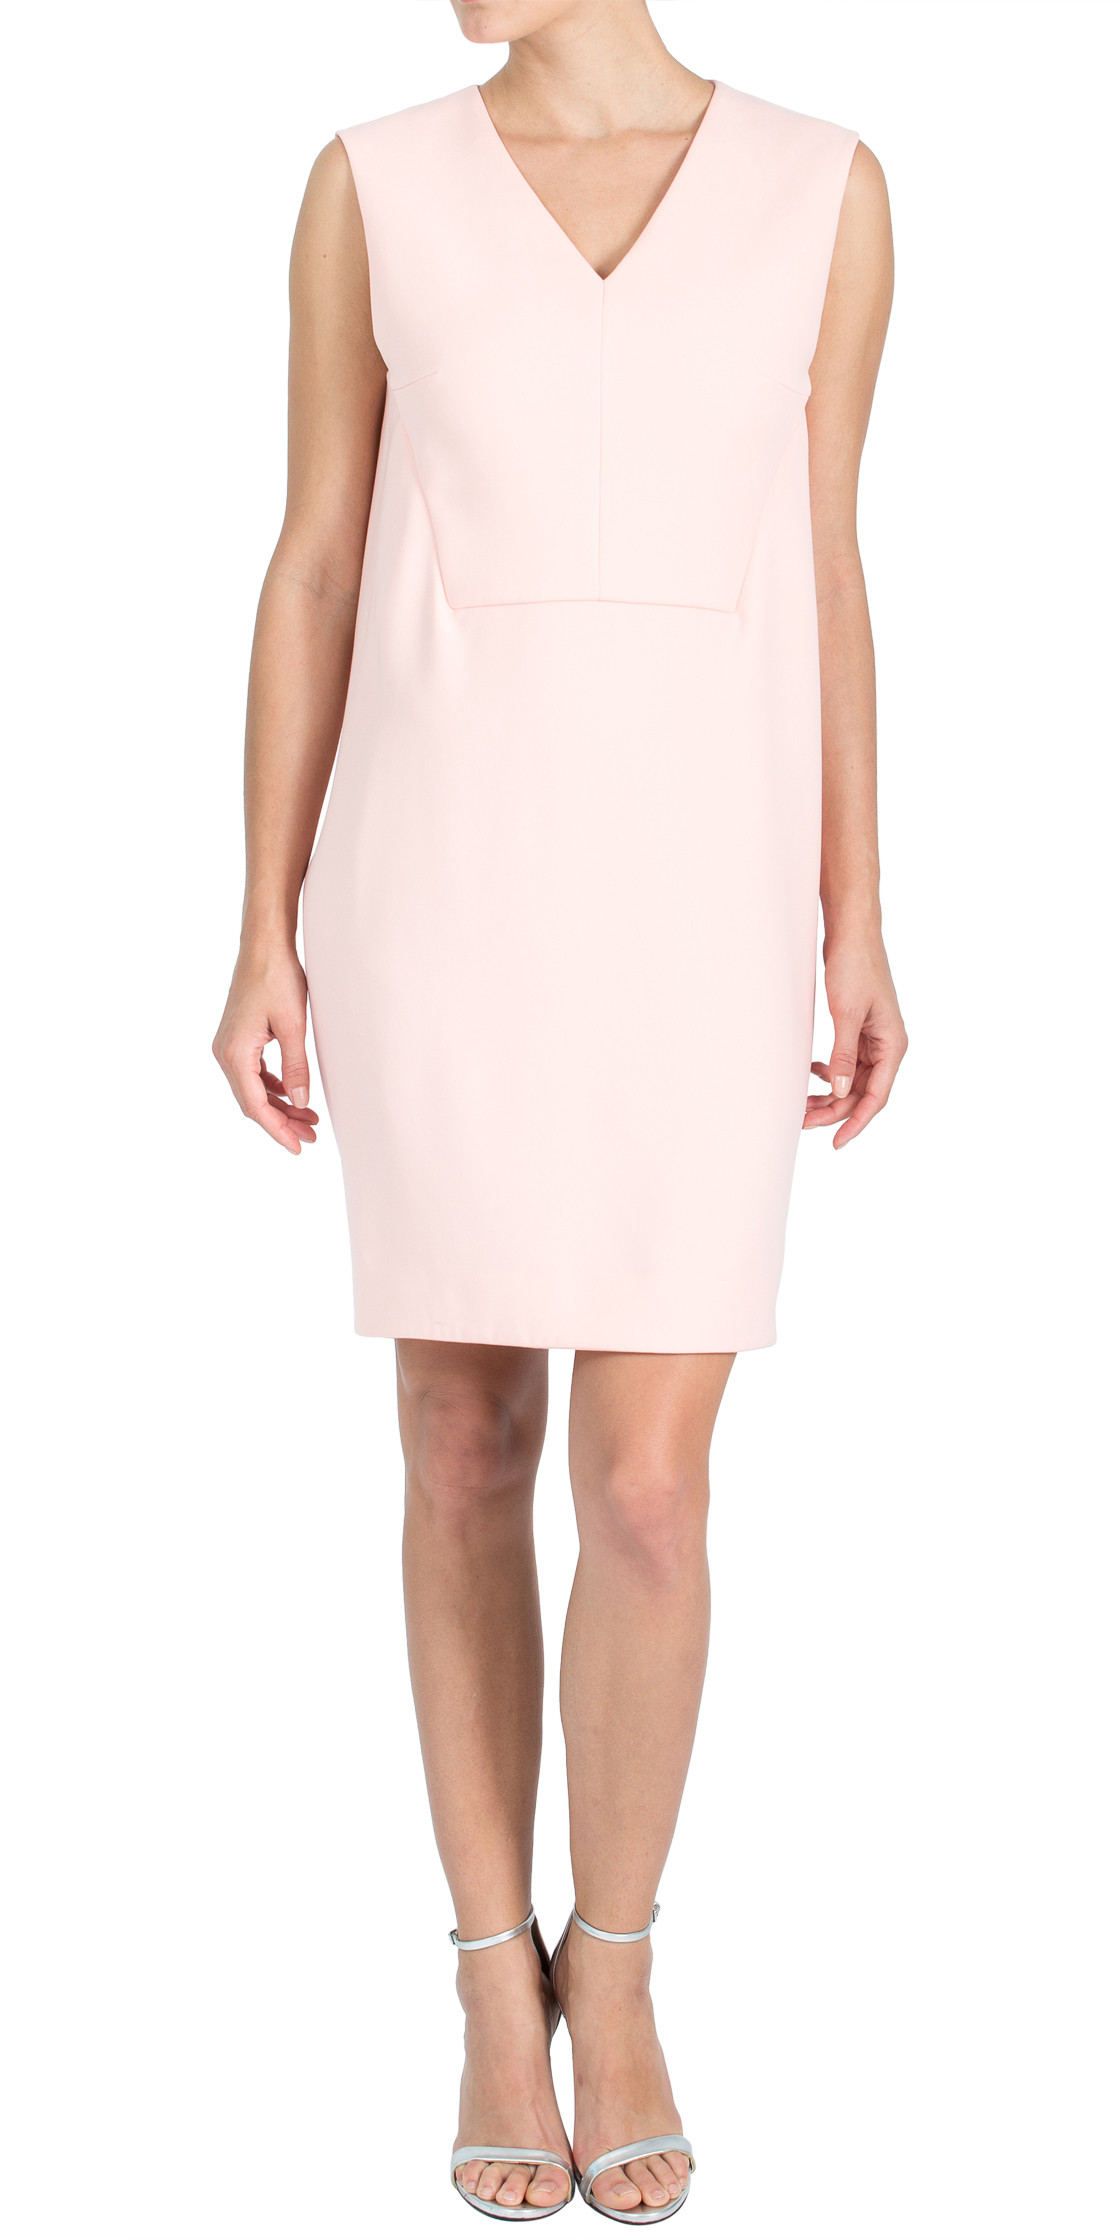 Balenciaga Sleeveless Pencil Dress